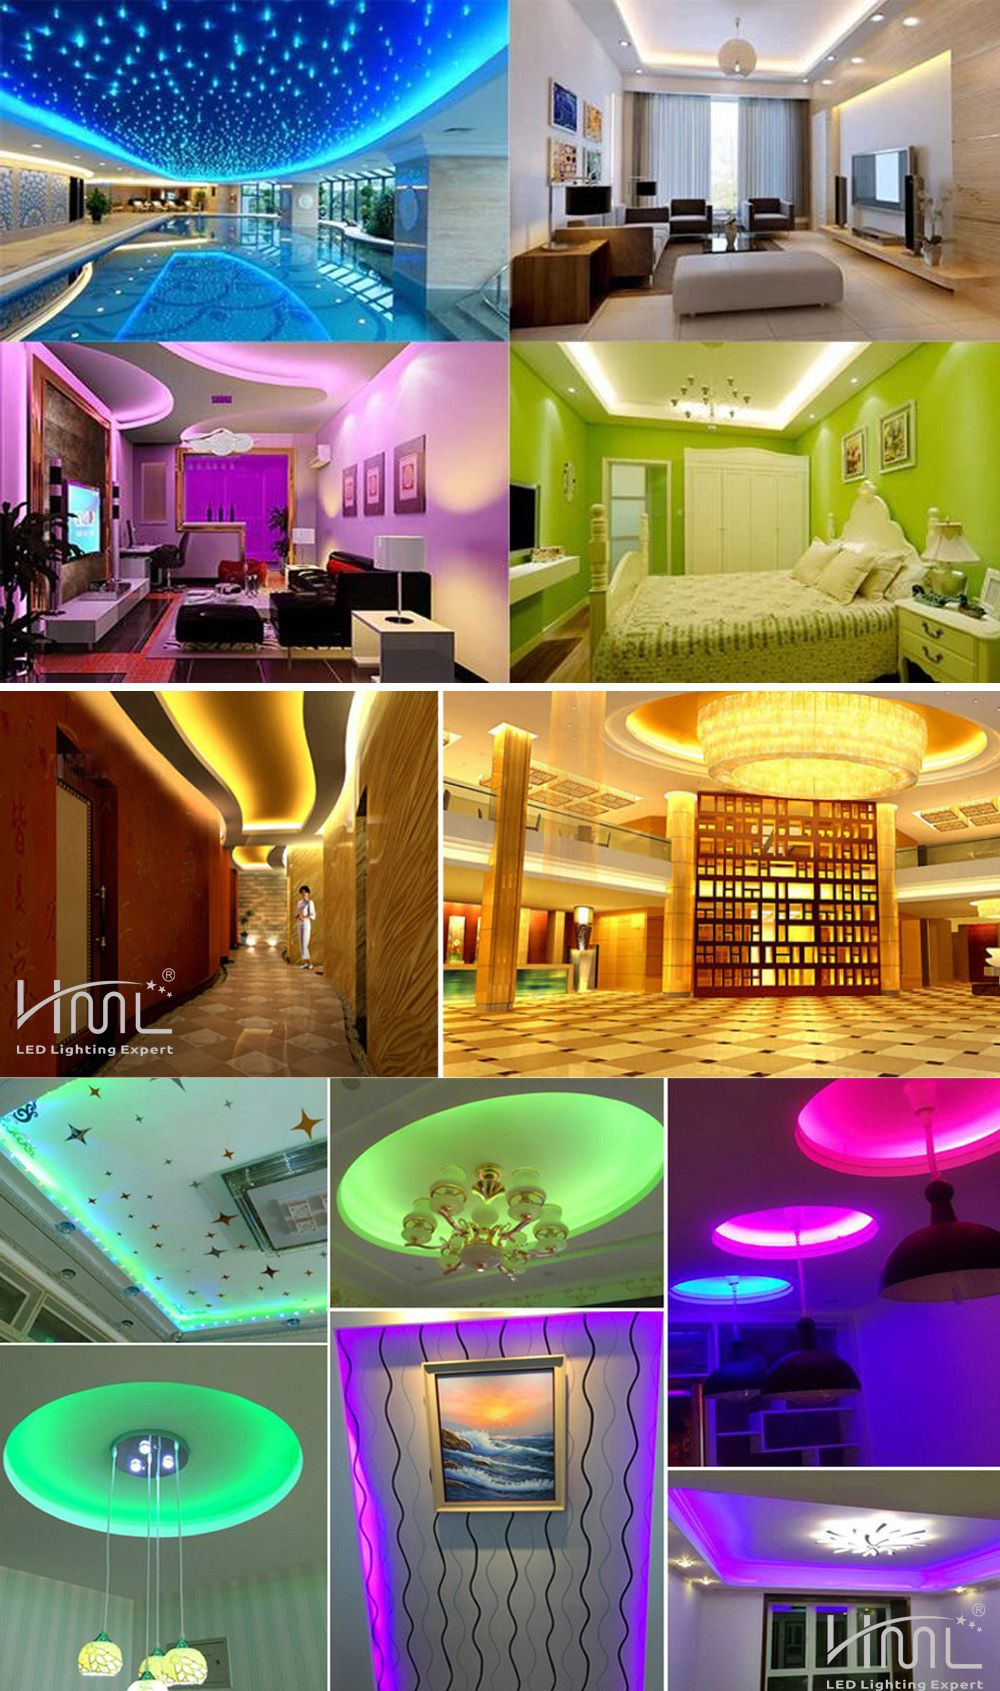 HML 5M LED Strip Light 24W RGB SMD2835 300 LEDs 2pcs with IR 24 Keys Remote Control and DC Adapter(EU Plug)